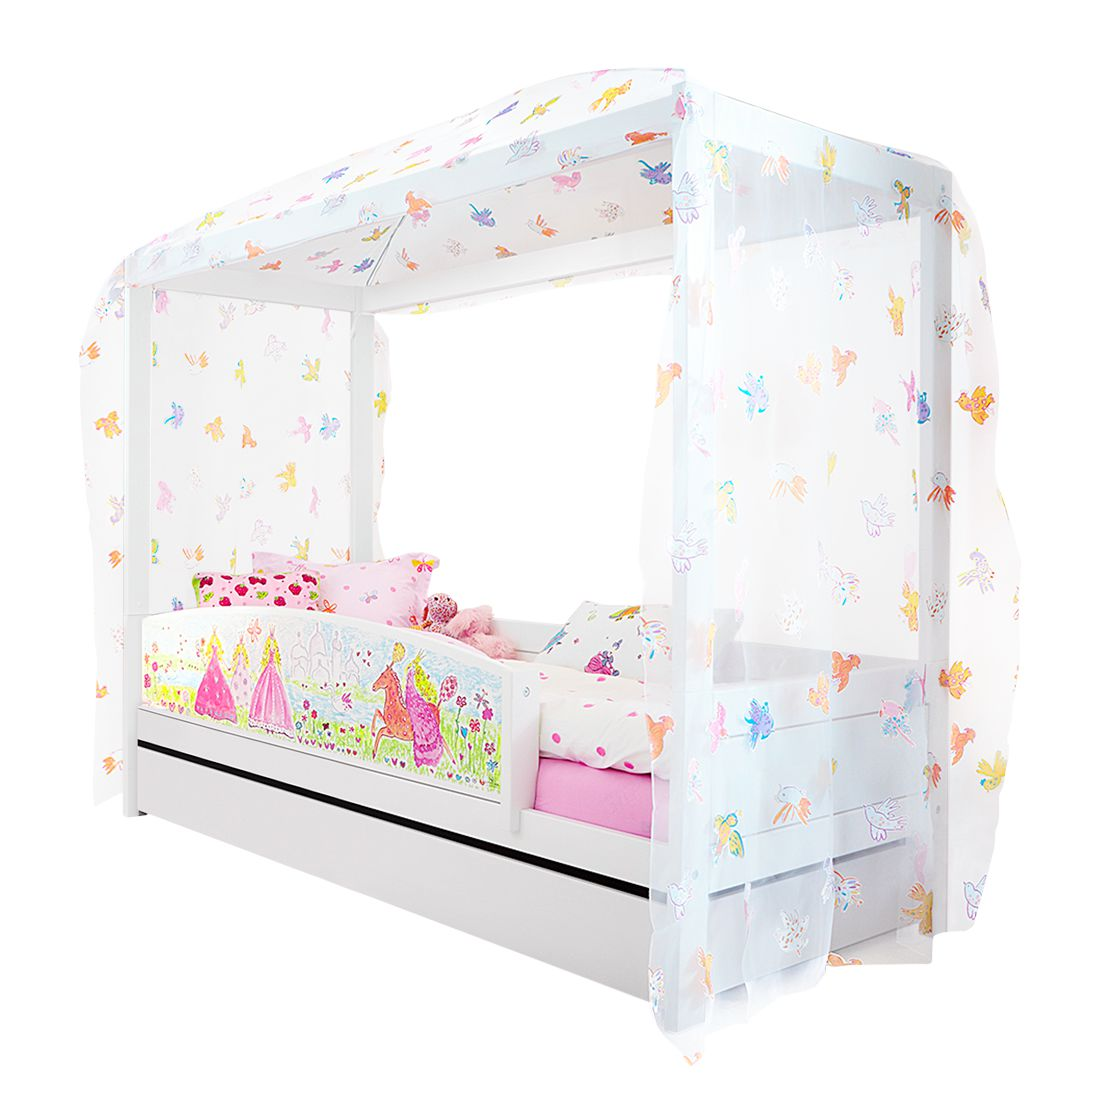 Himmelbett Princess Lifetime Original - Kiefer teilmassiv - Weiß - Mit Deluxe Lattenrost, Lifetime Kidsrooms